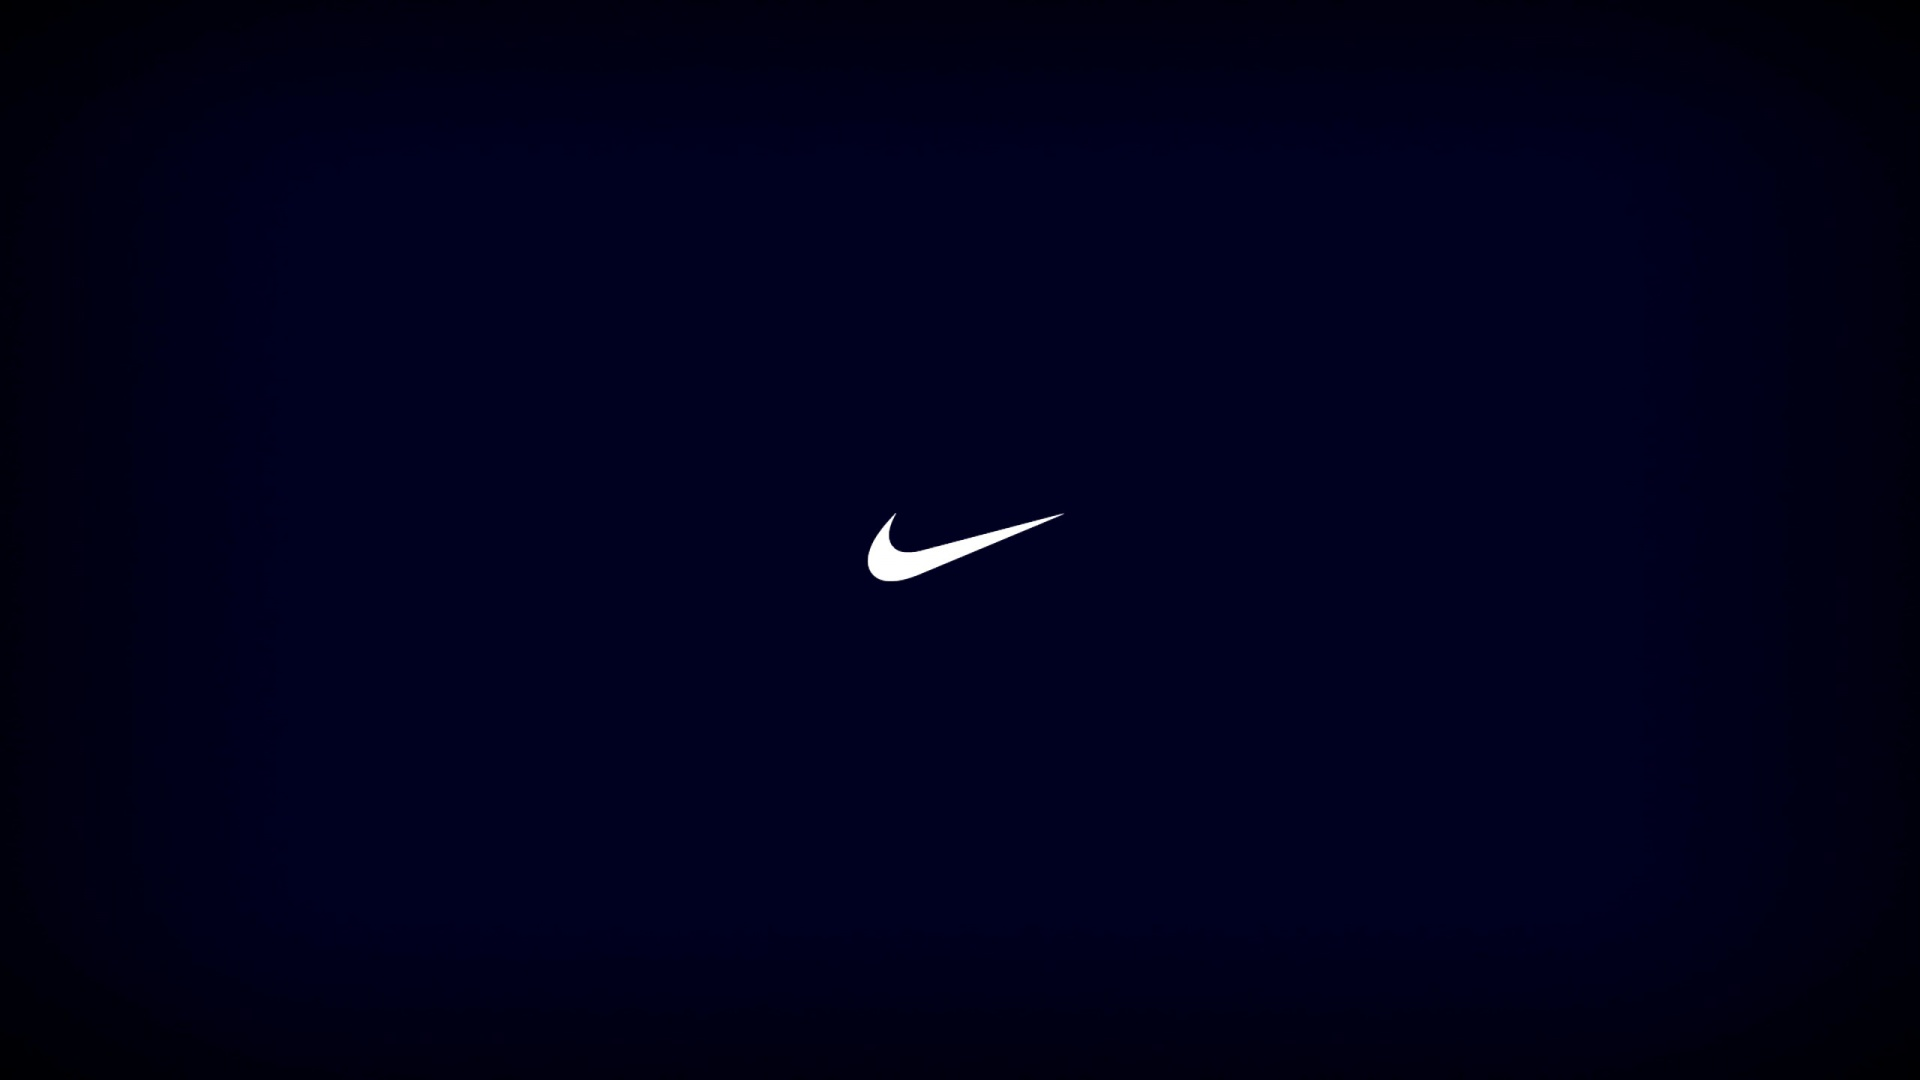 Great Wallpaper Logo Nike - blue-nike-logo-wallpaper-43982-45074-hd-wallpapers  Perfect Image Reference_194999.jpg